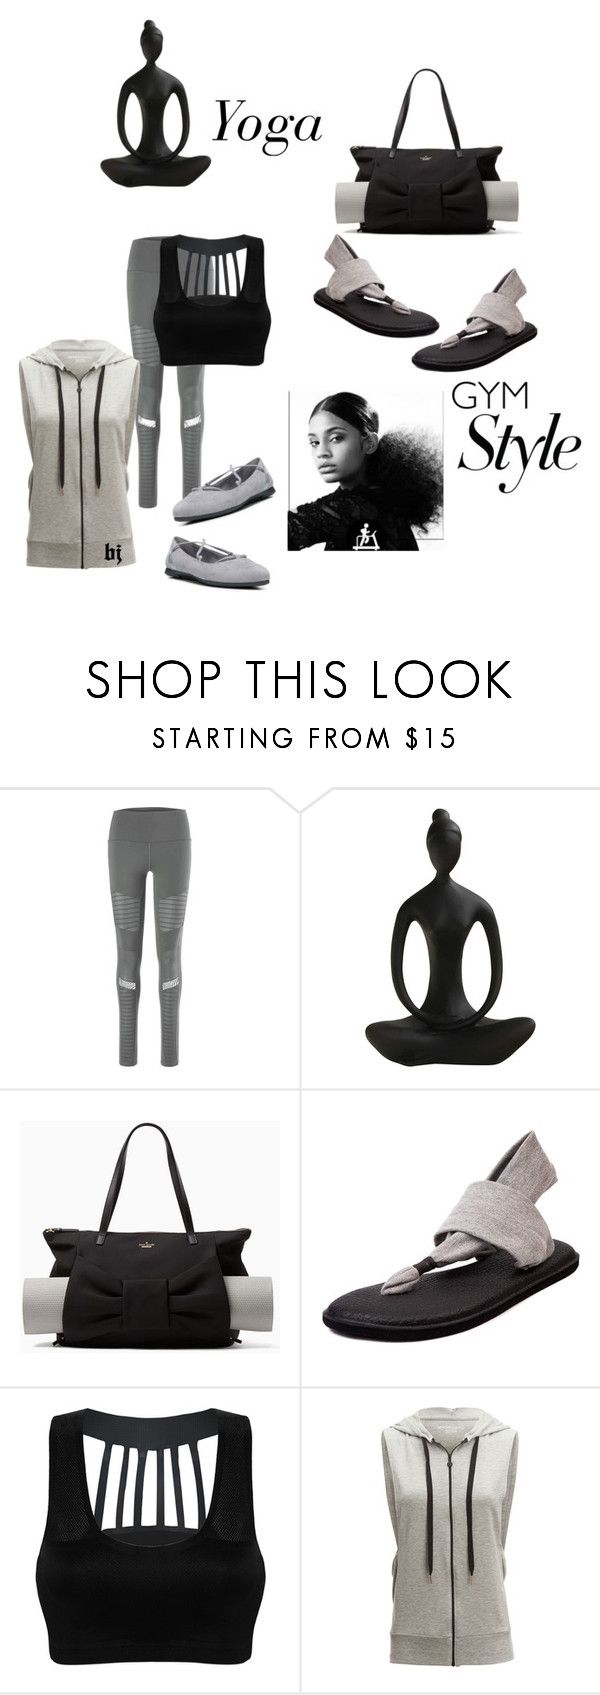 """""""Work It Out--Gym Essentials"""" by jacksondobe on Polyvore featuring Alo, Kate Spade, sanuk, Beyond Yoga, Dr. Scholl's and gymessentials"""